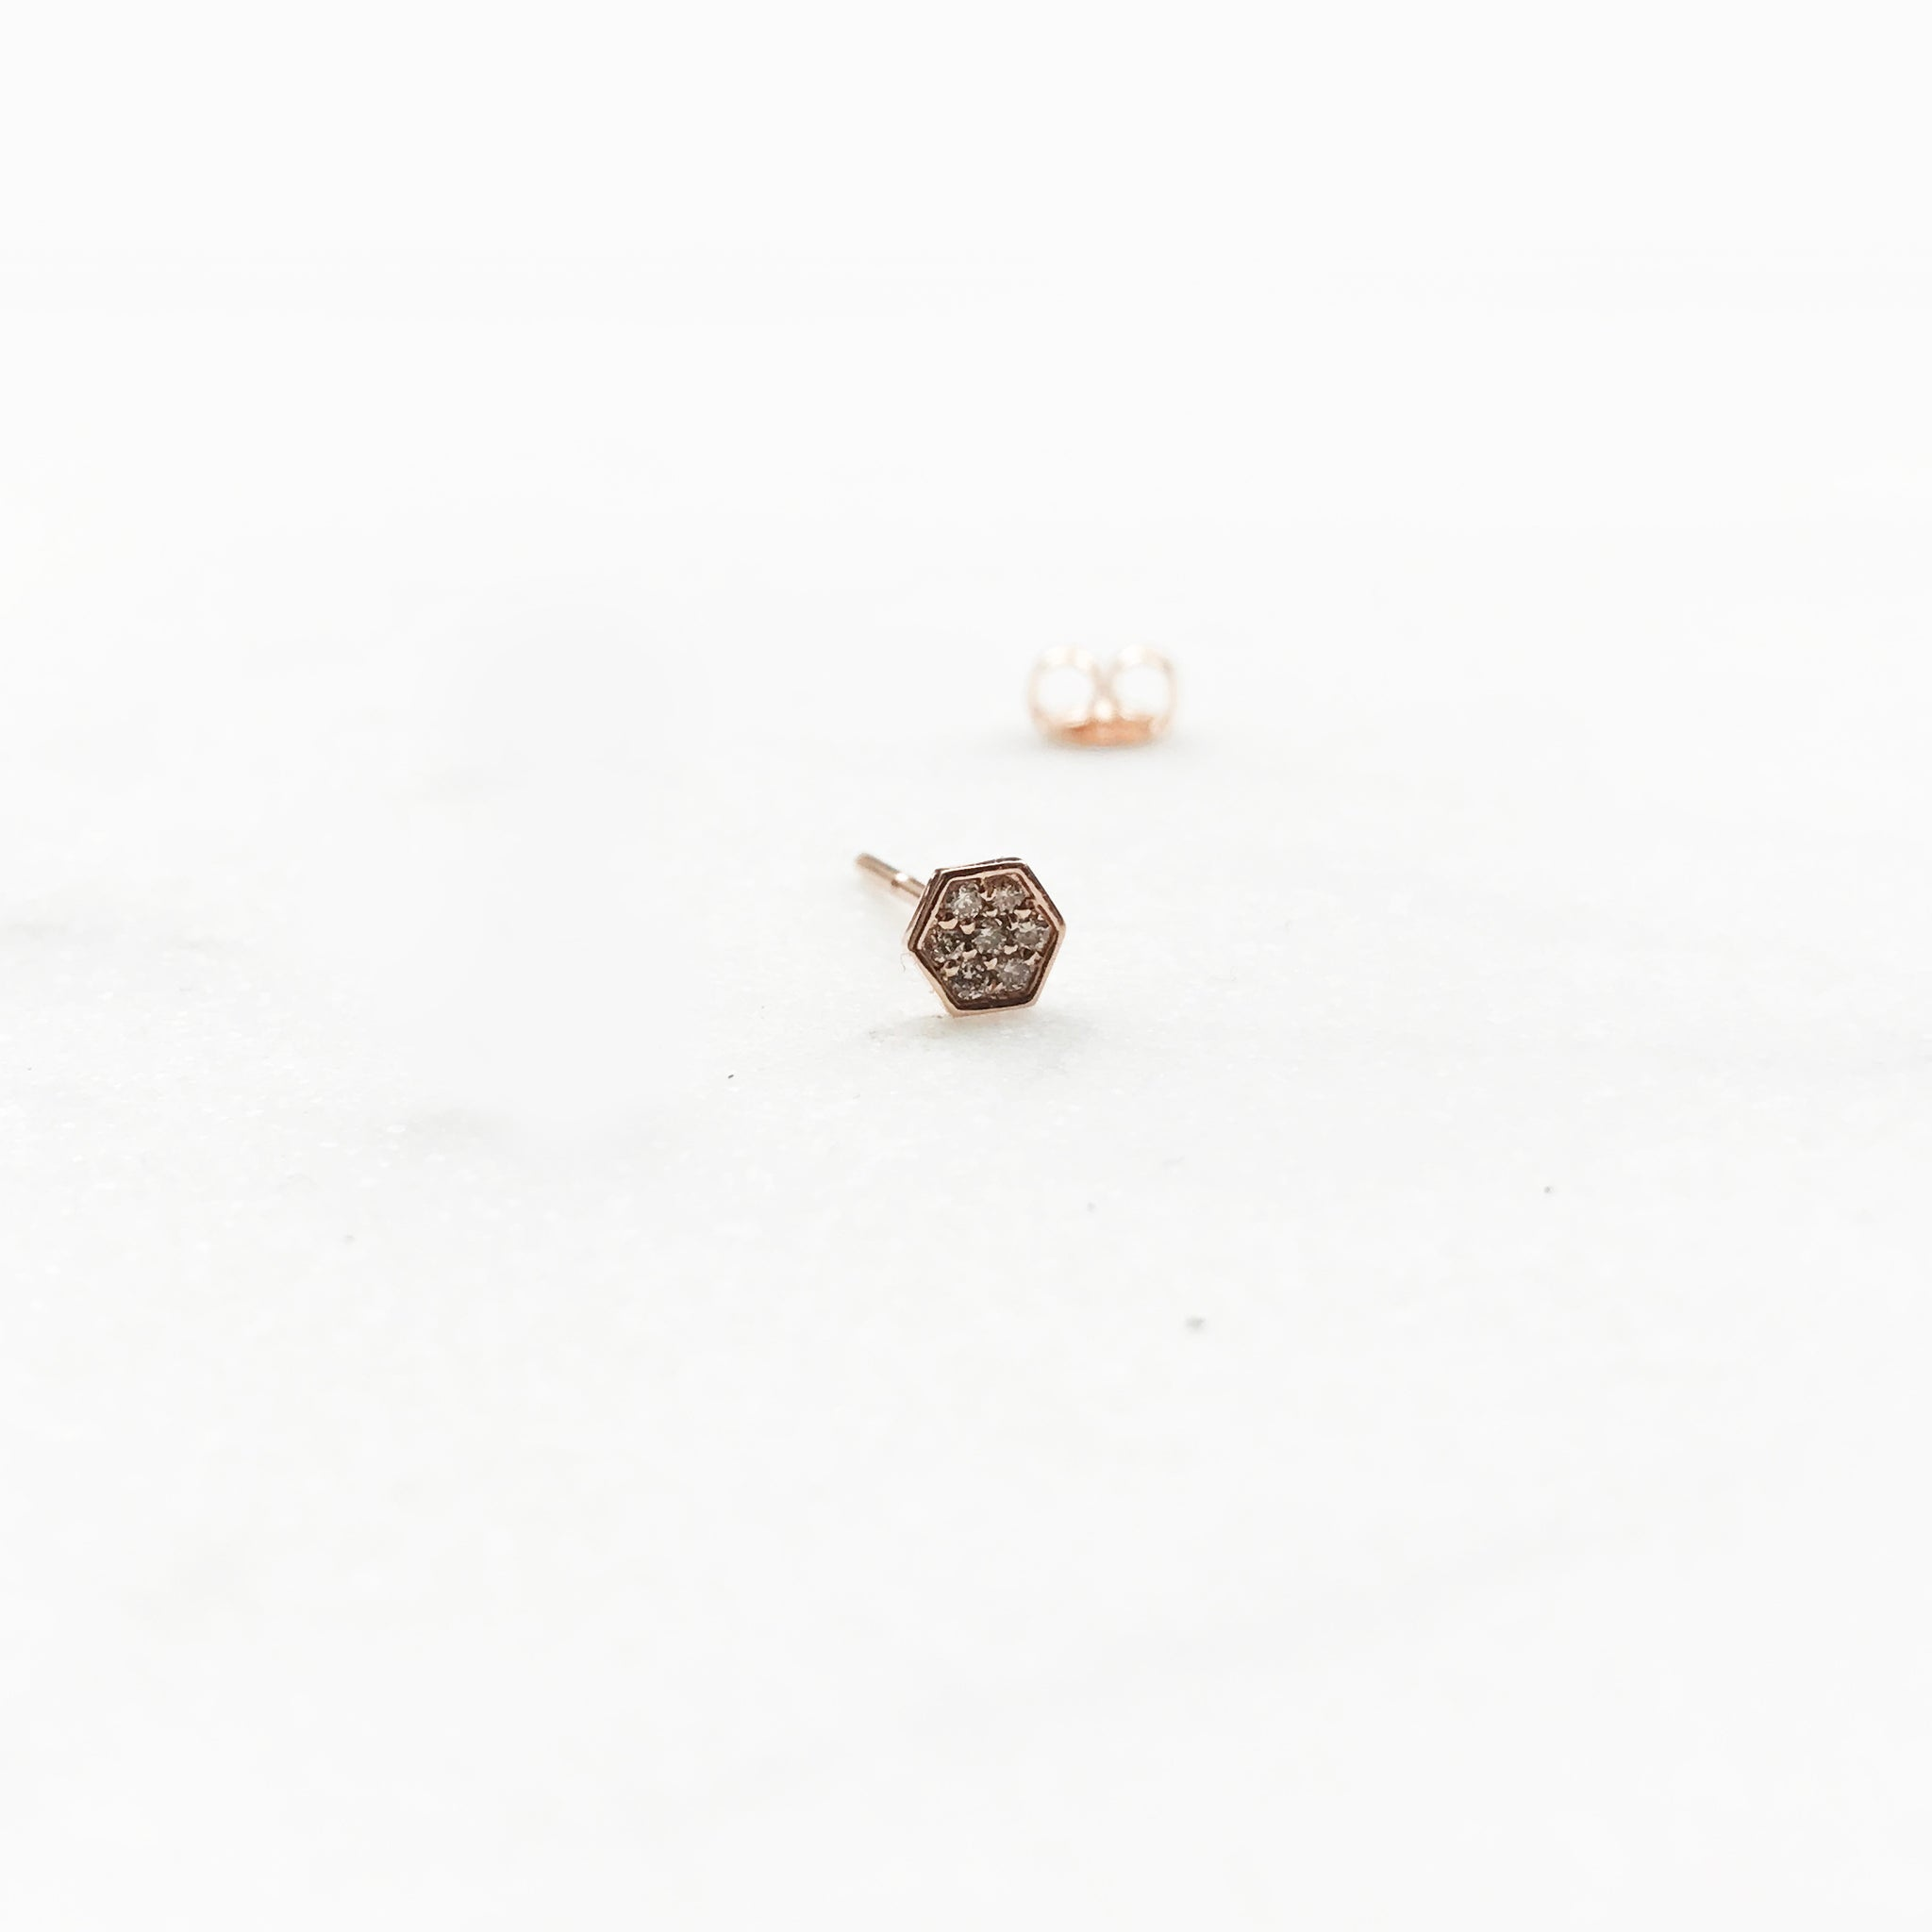 hexagon oblong rb wg drop earrings gold diamond white